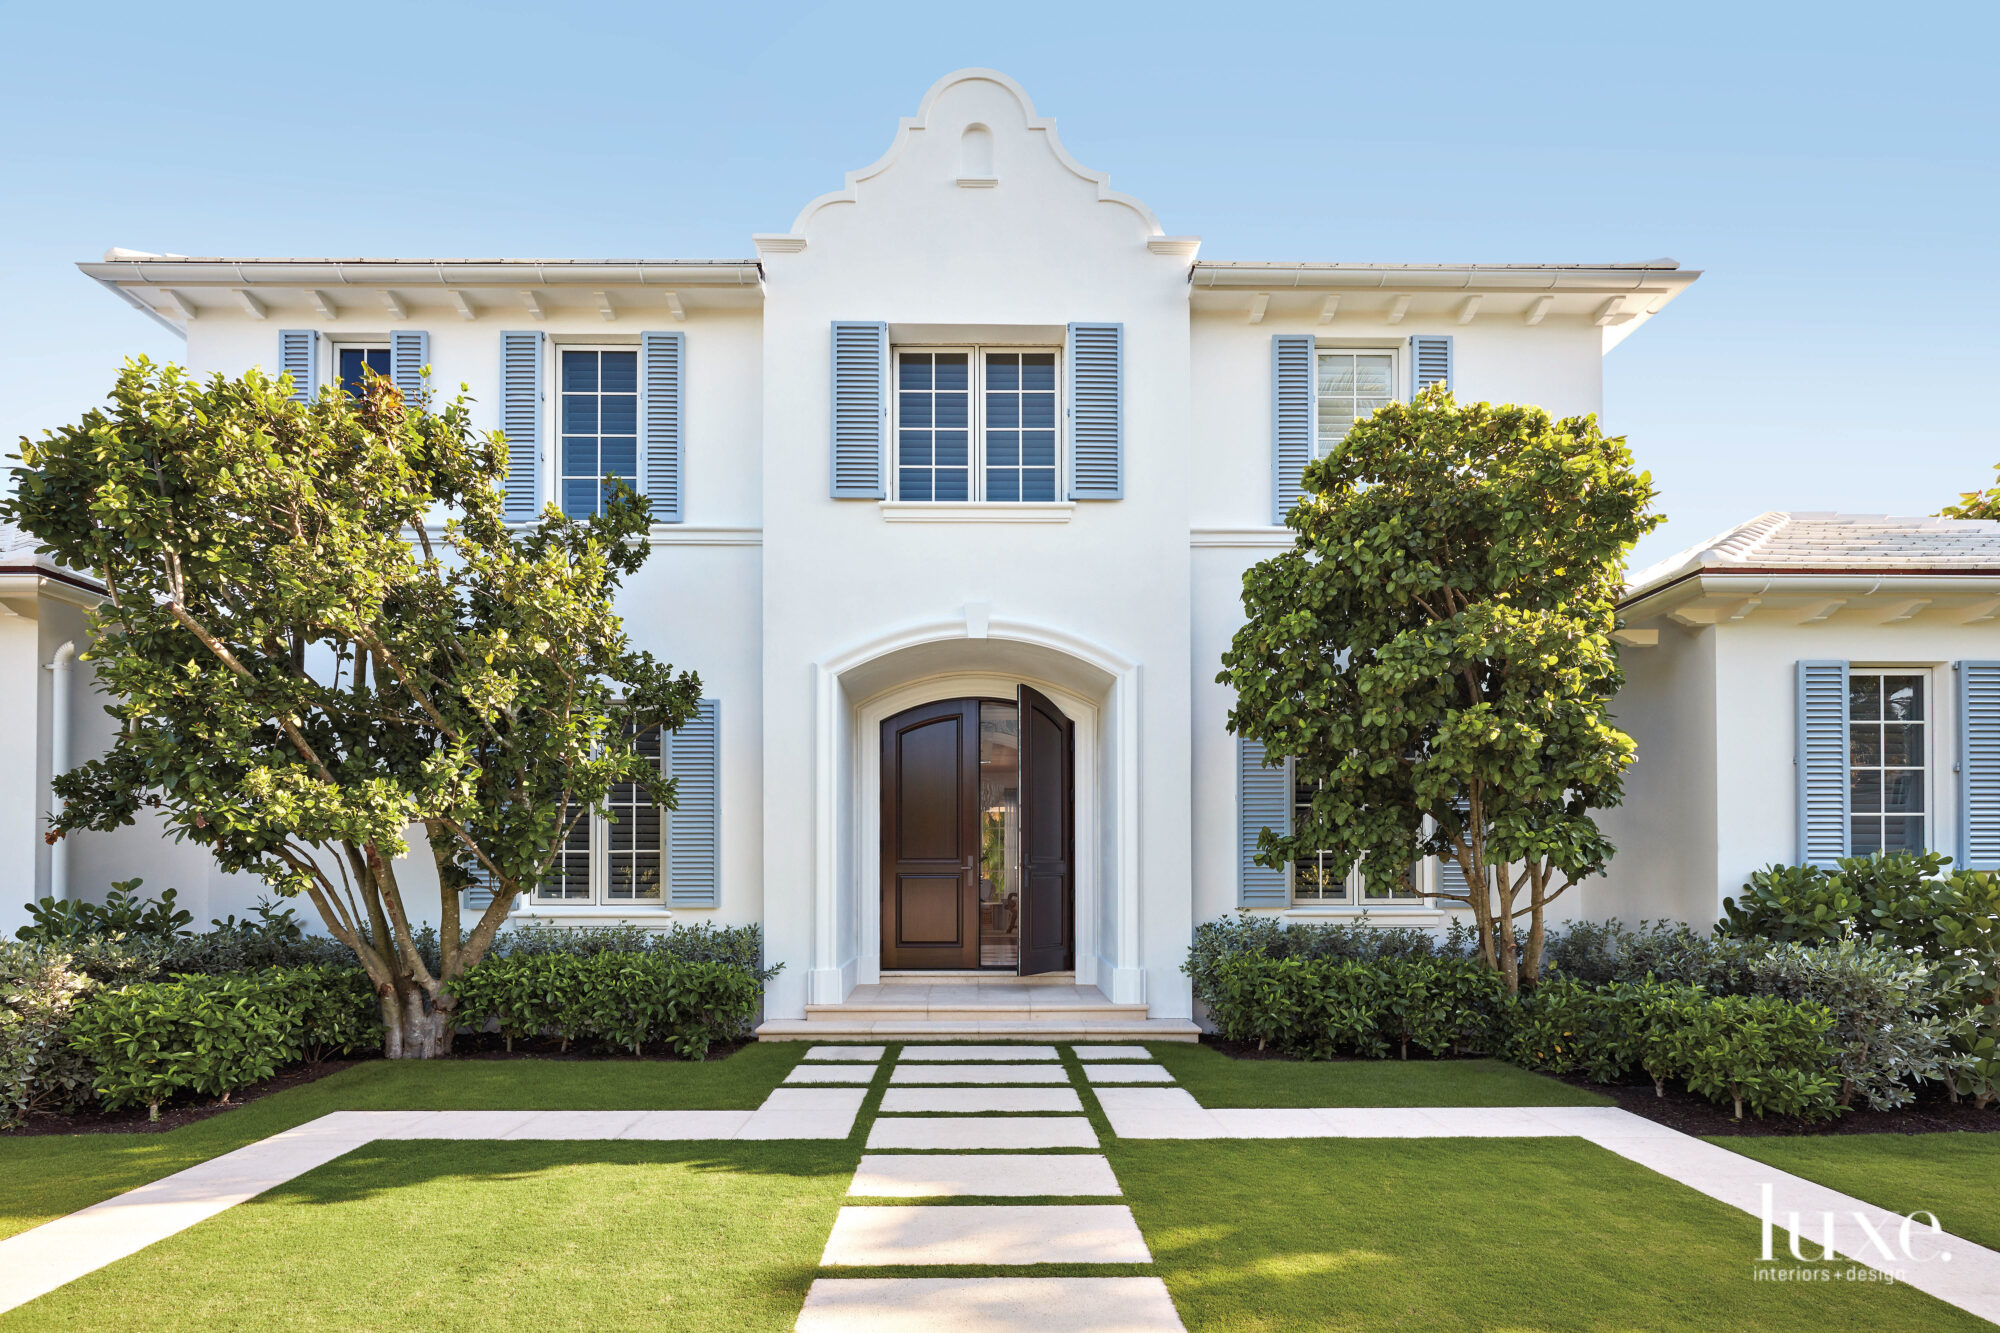 Exterior of white home with...